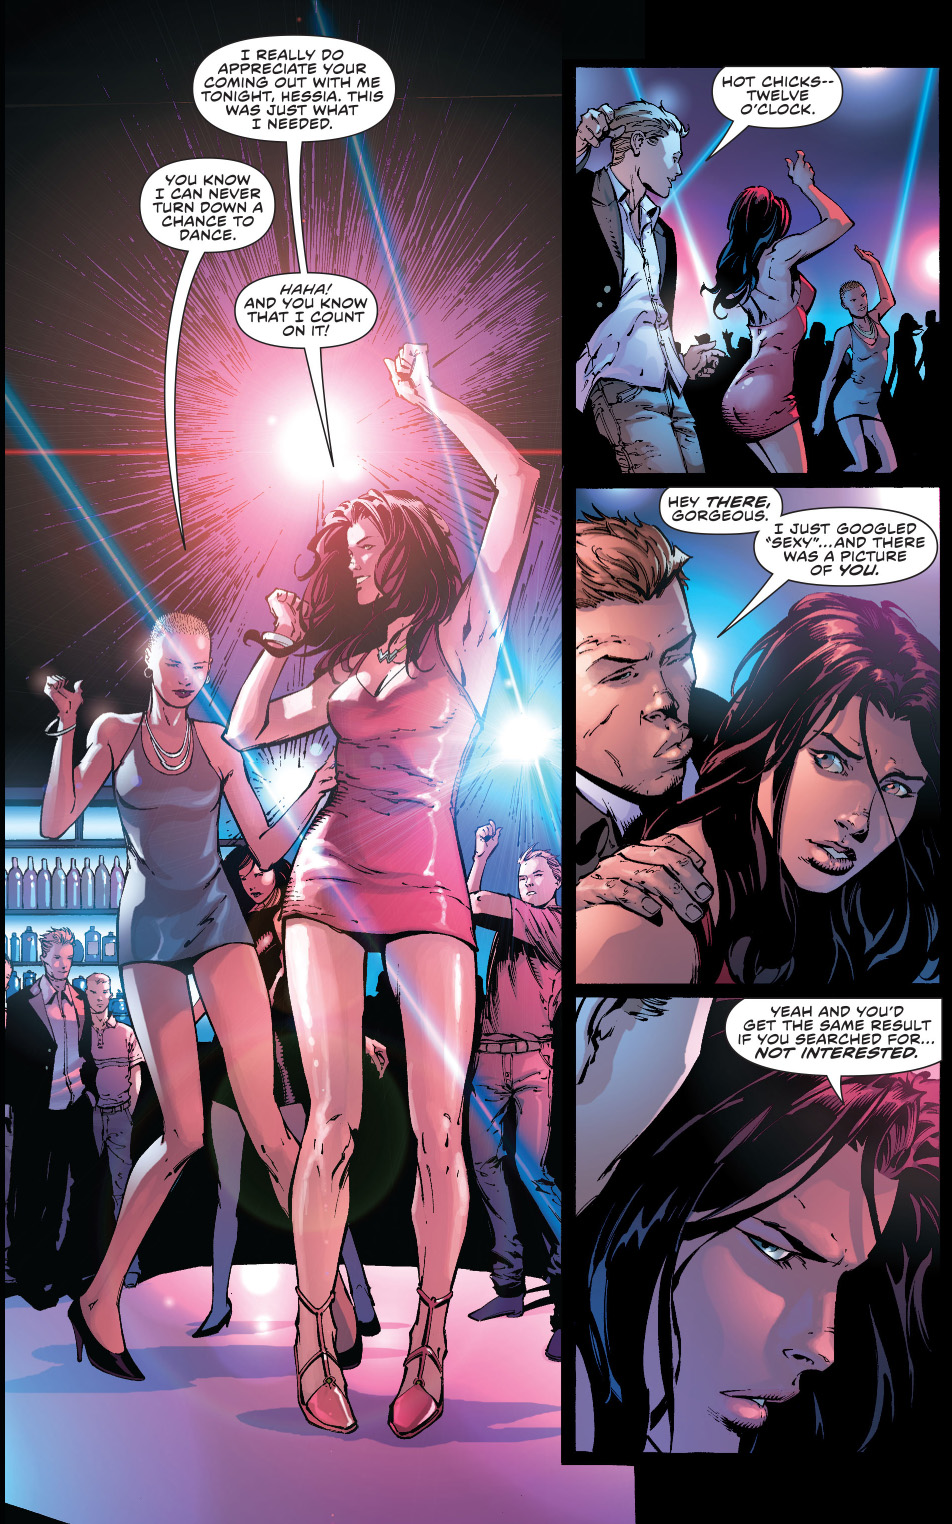 how wonder woman deals with gropers